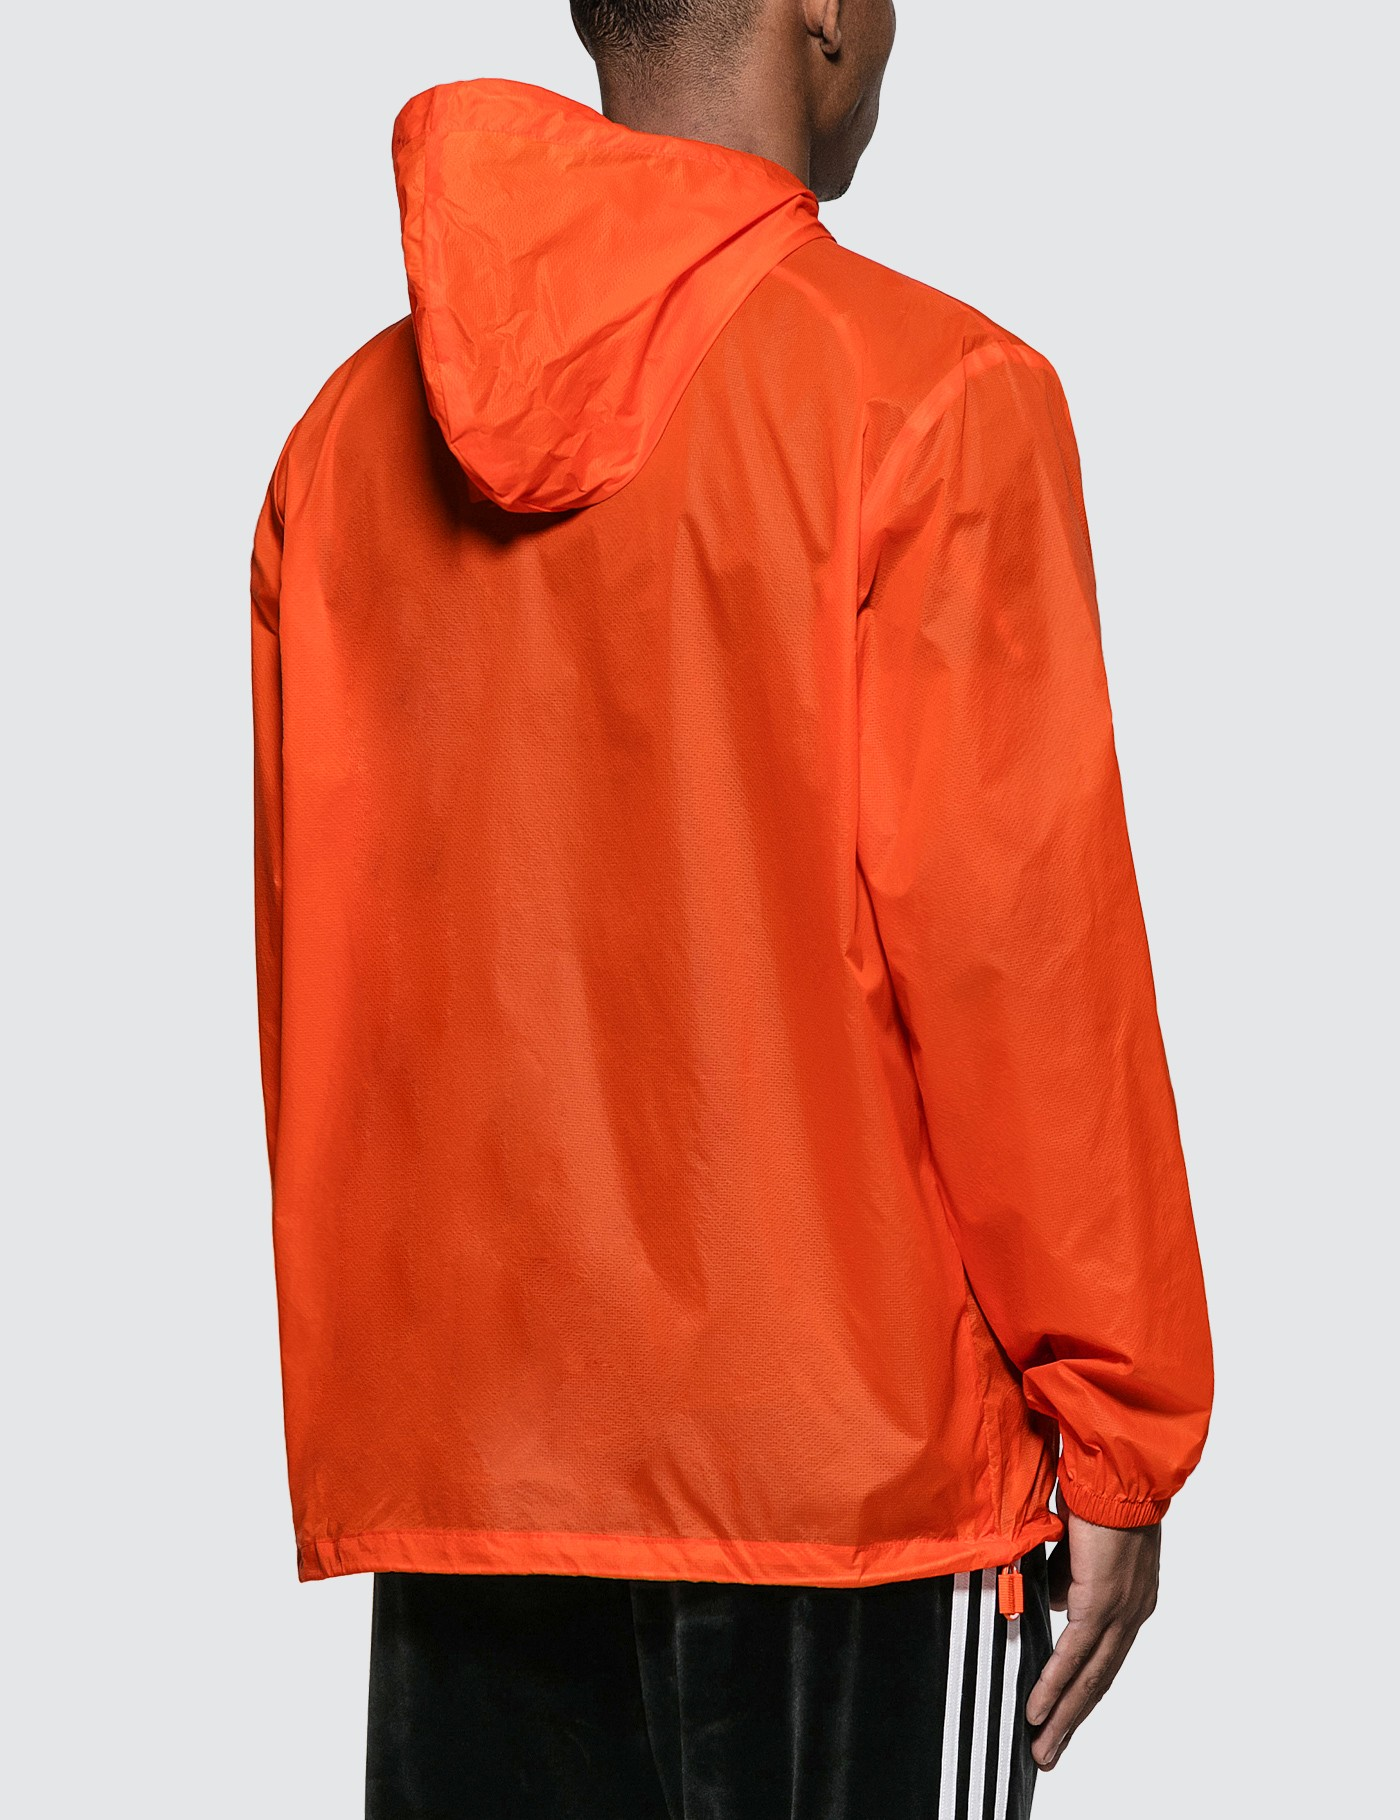 Adidas Originals UNDEFEATED x Adidas Pack Jacket